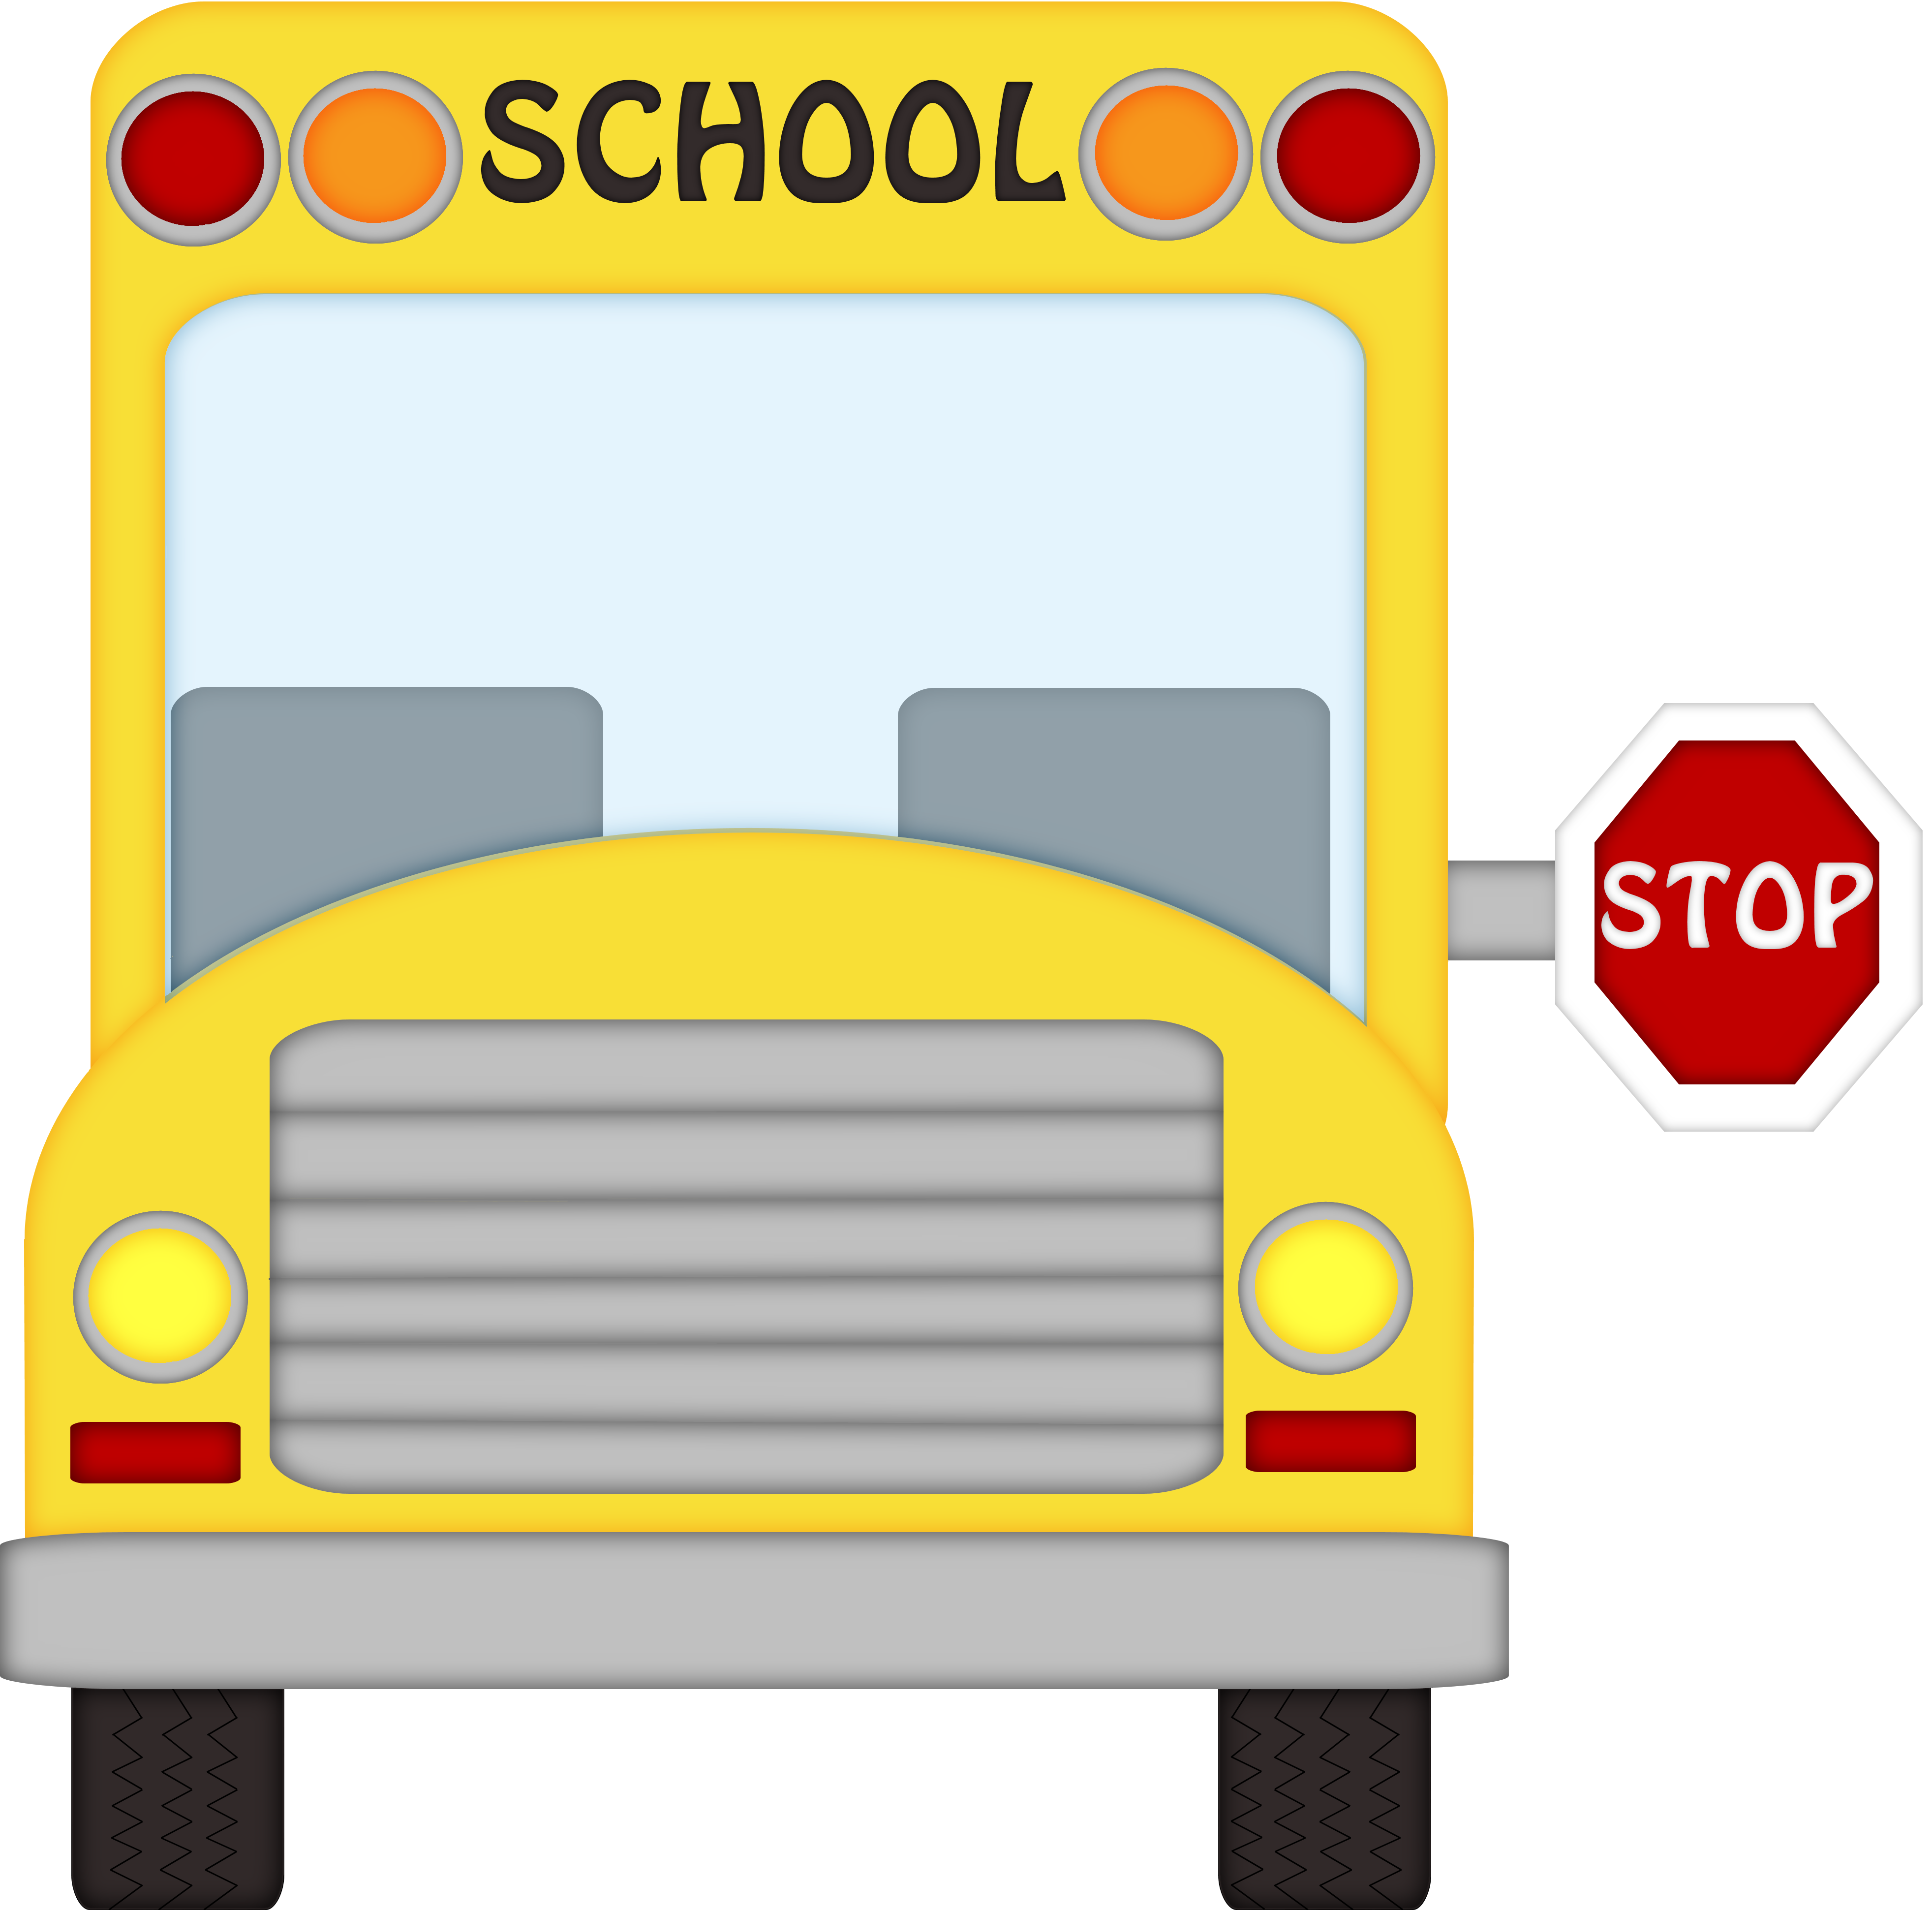 Bus front clipart clipart black and white stock school bus front clipart craft projects transportations - WikiClipArt clipart black and white stock